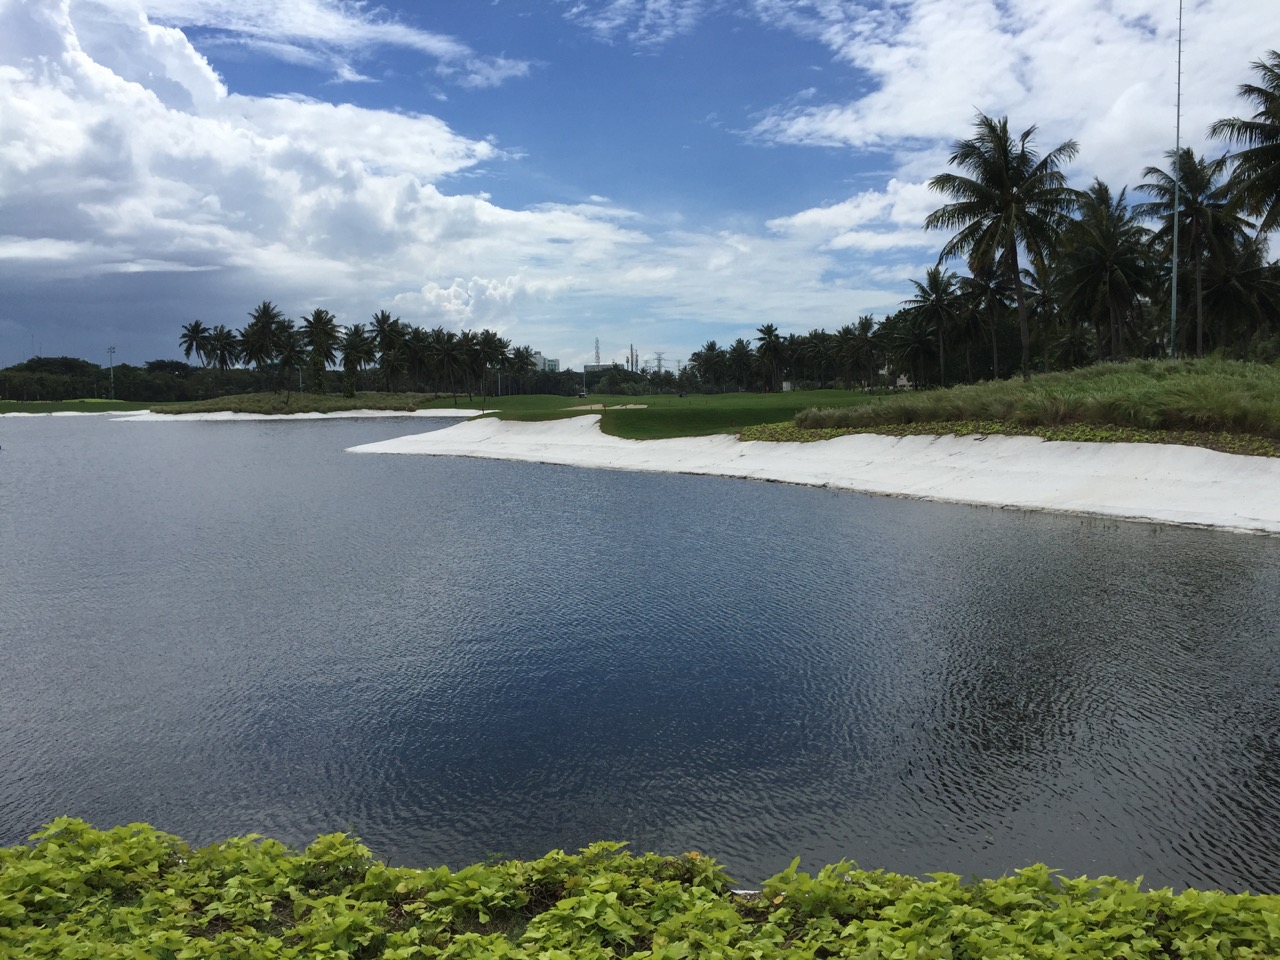 Damai Indah Golf ( PIK ) course- the edges of the lake are concrete, not sand!